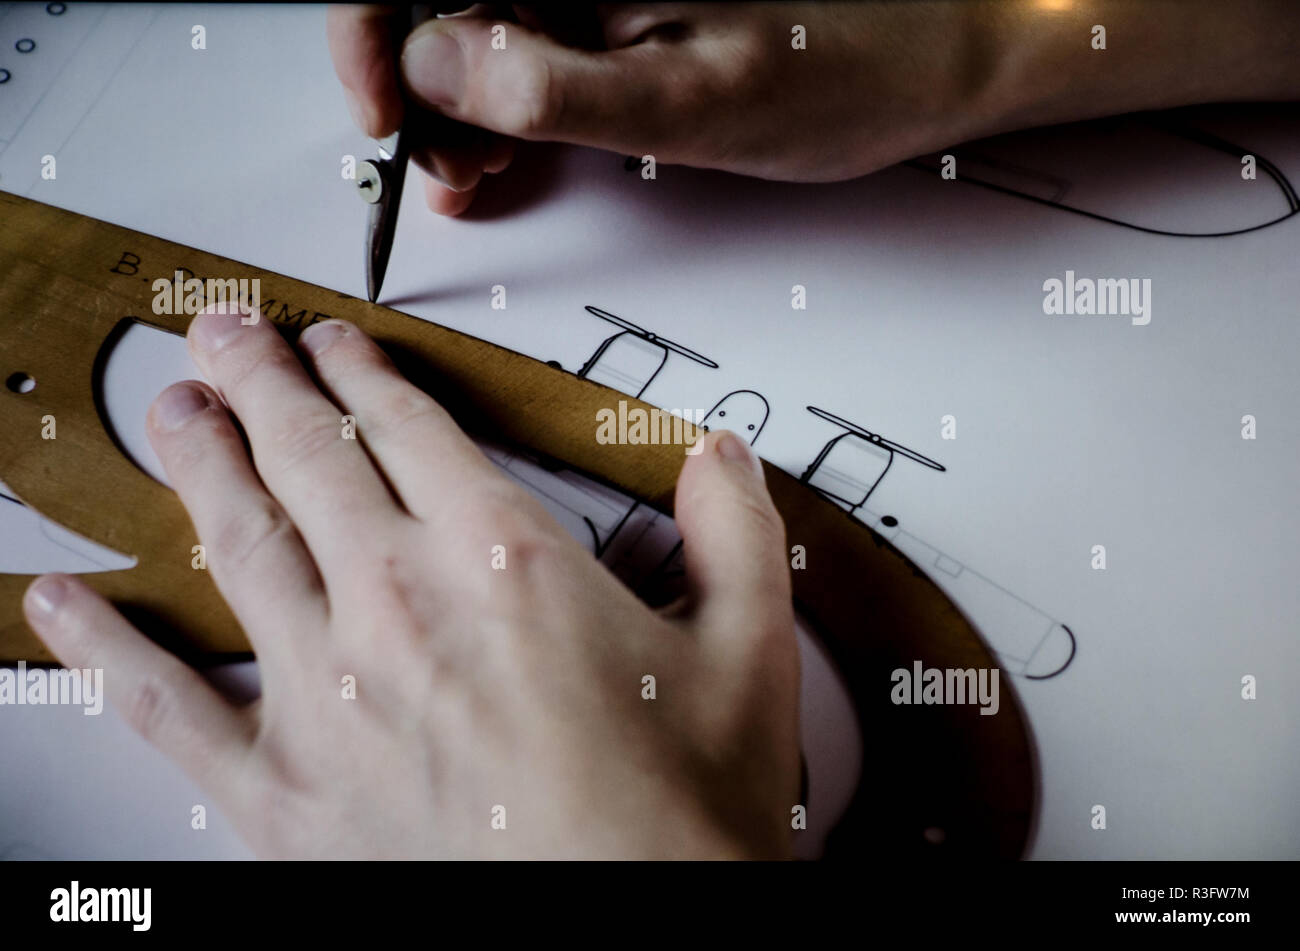 Aircraft Mechanical Drawing by Hand - Stock Image